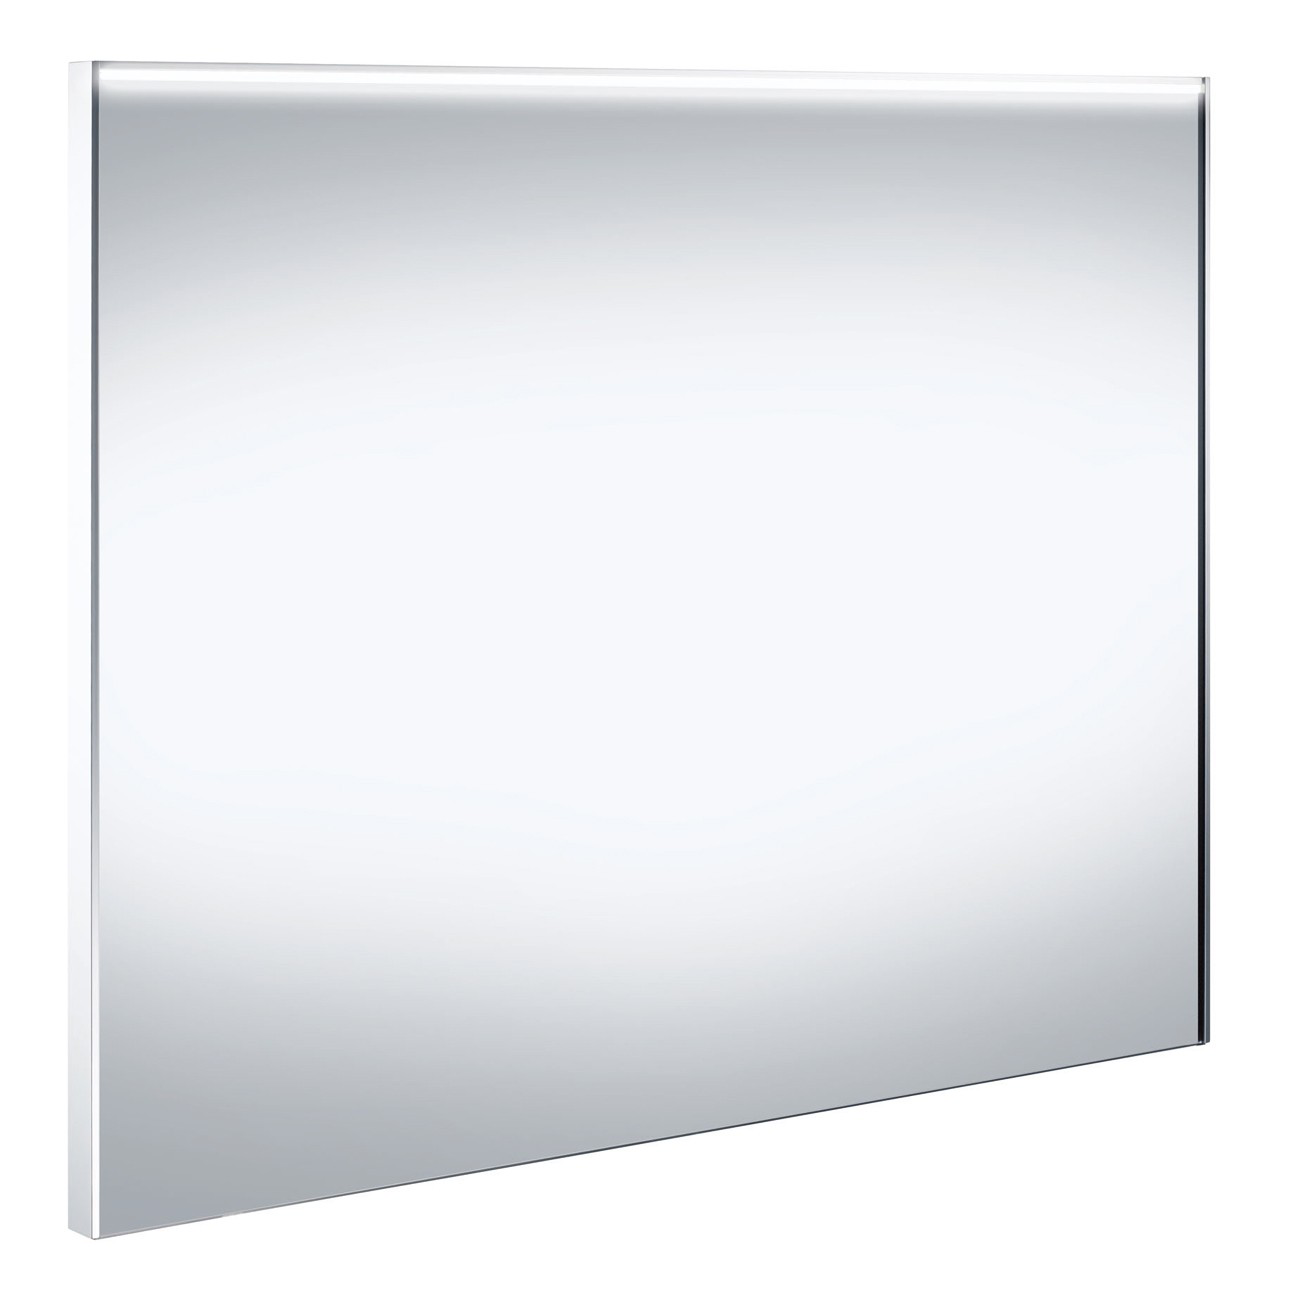 Mg heating mirror l r p export for Mirror on mirror